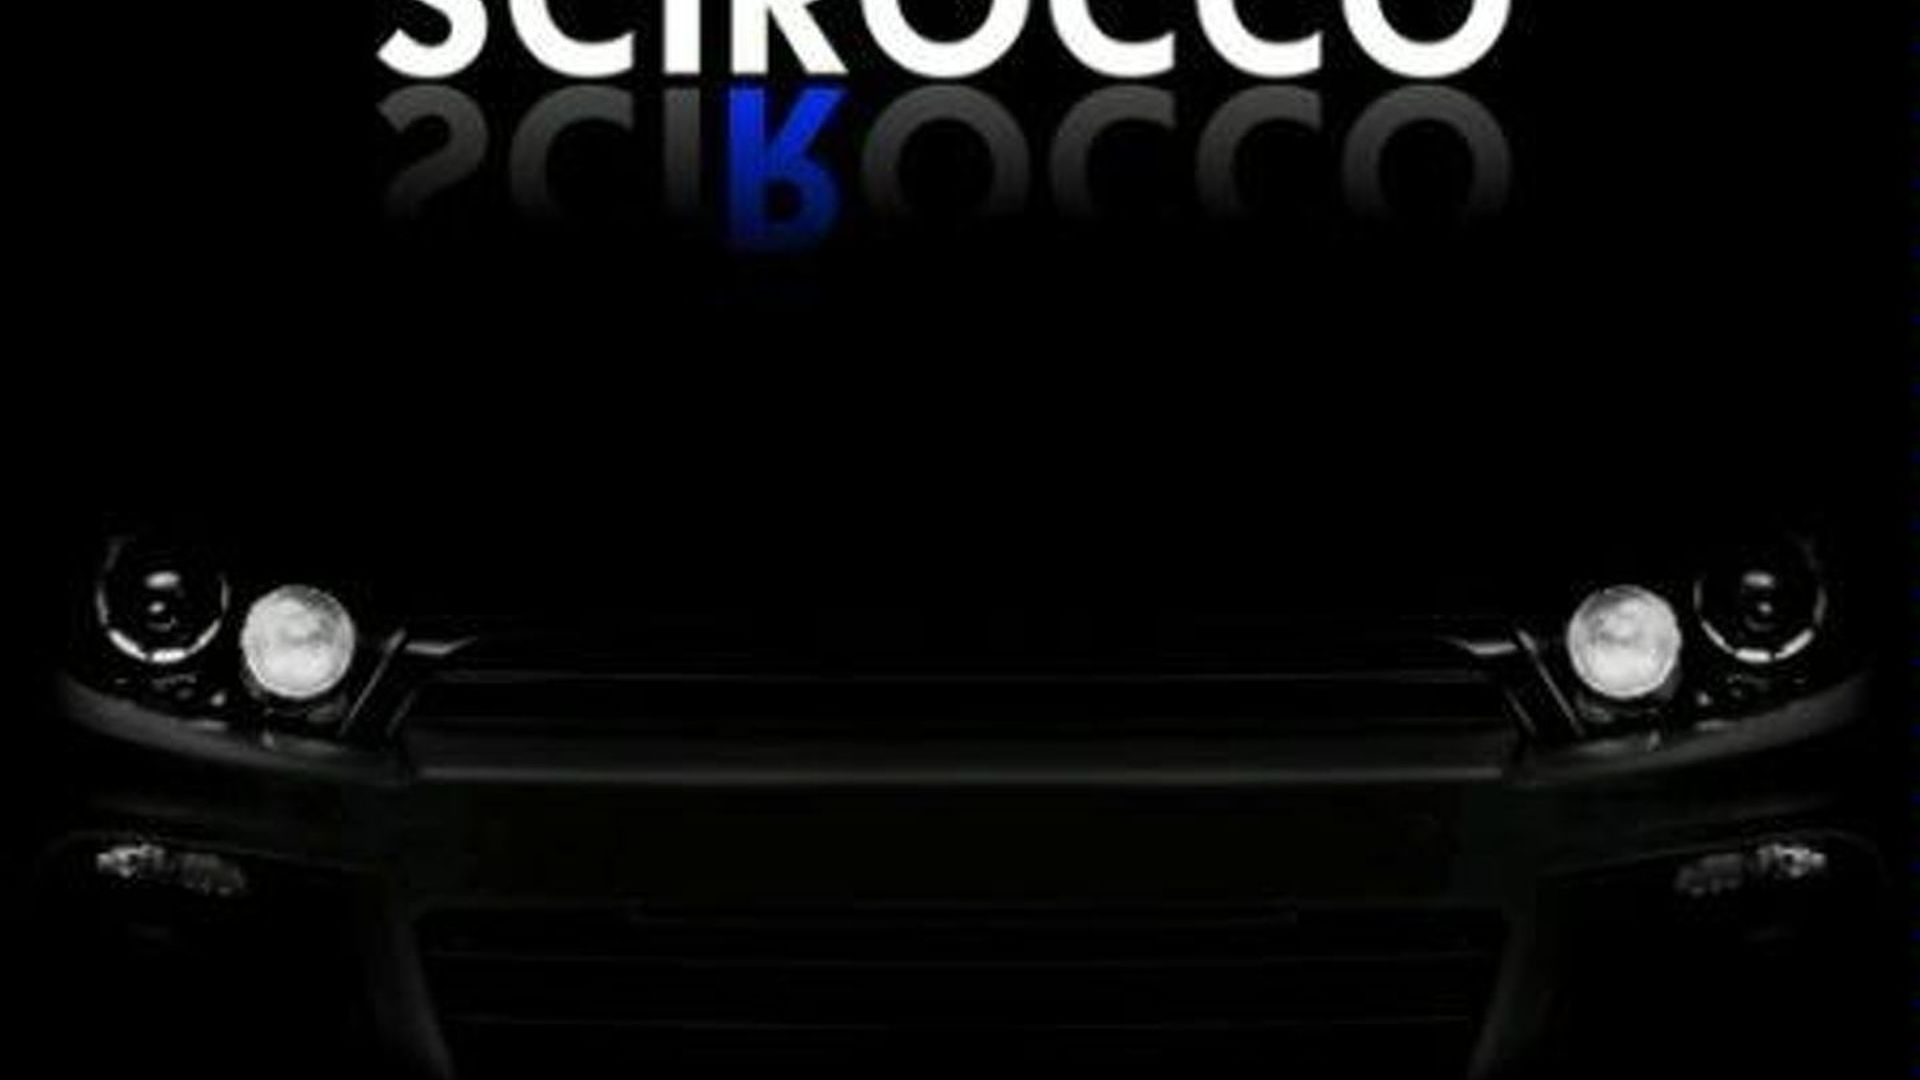 VW Scirocco R Series Teaser Real or Fake?